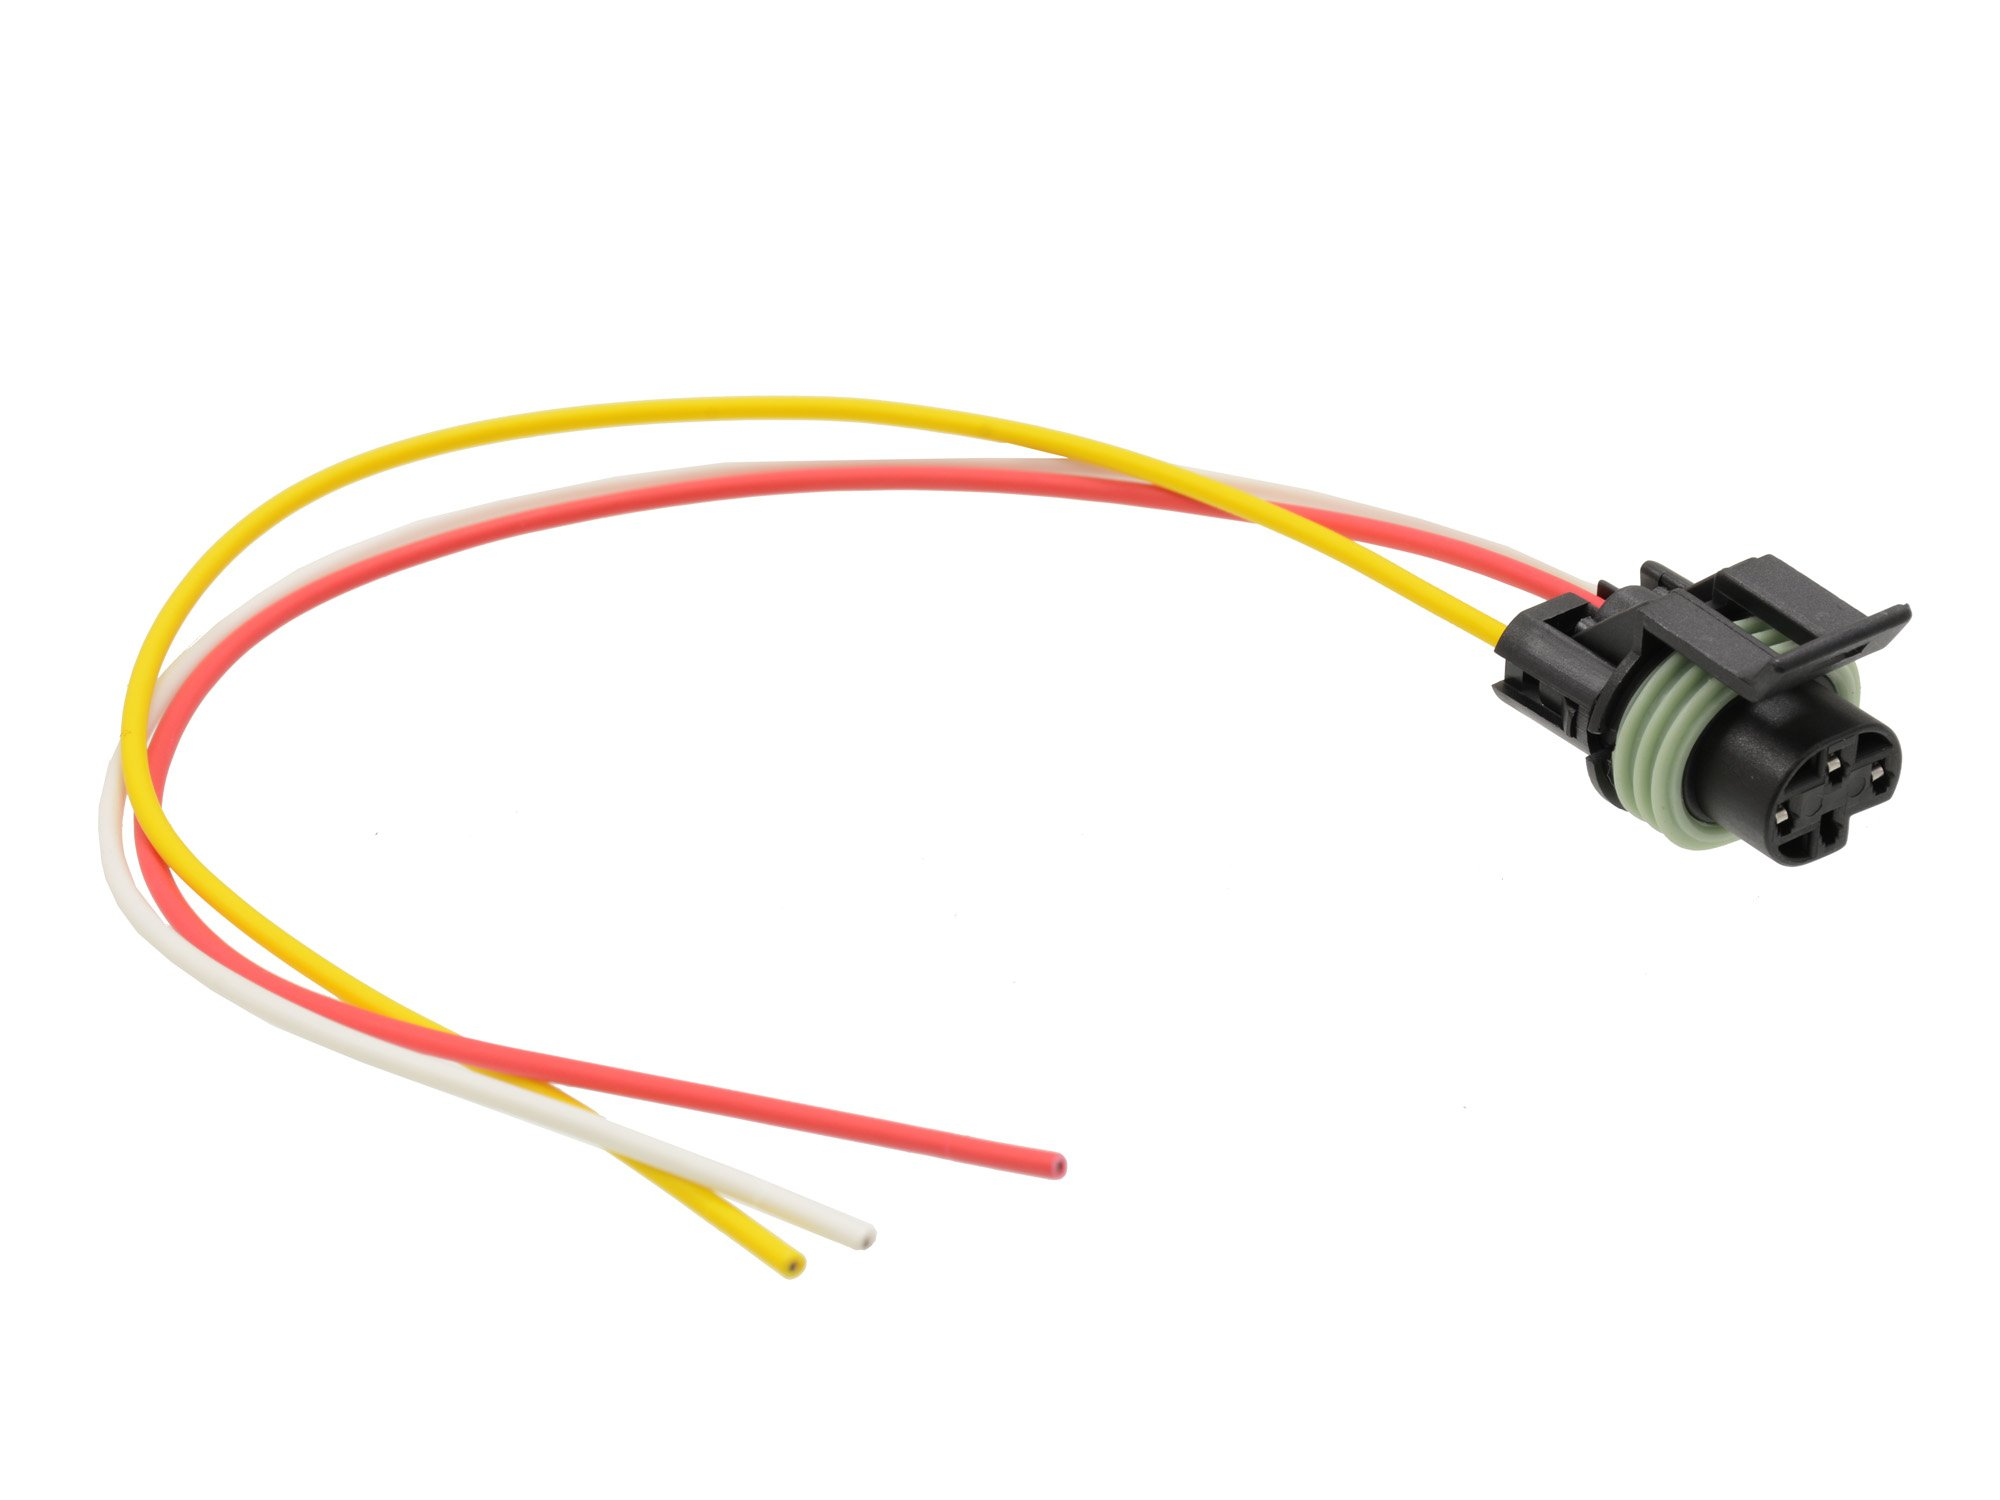 Michigan Motorsports Oil Pressure Switch Connector Pigtail 3 wire for GM 6.5L 1992-2003 PN- 12085499, PT121